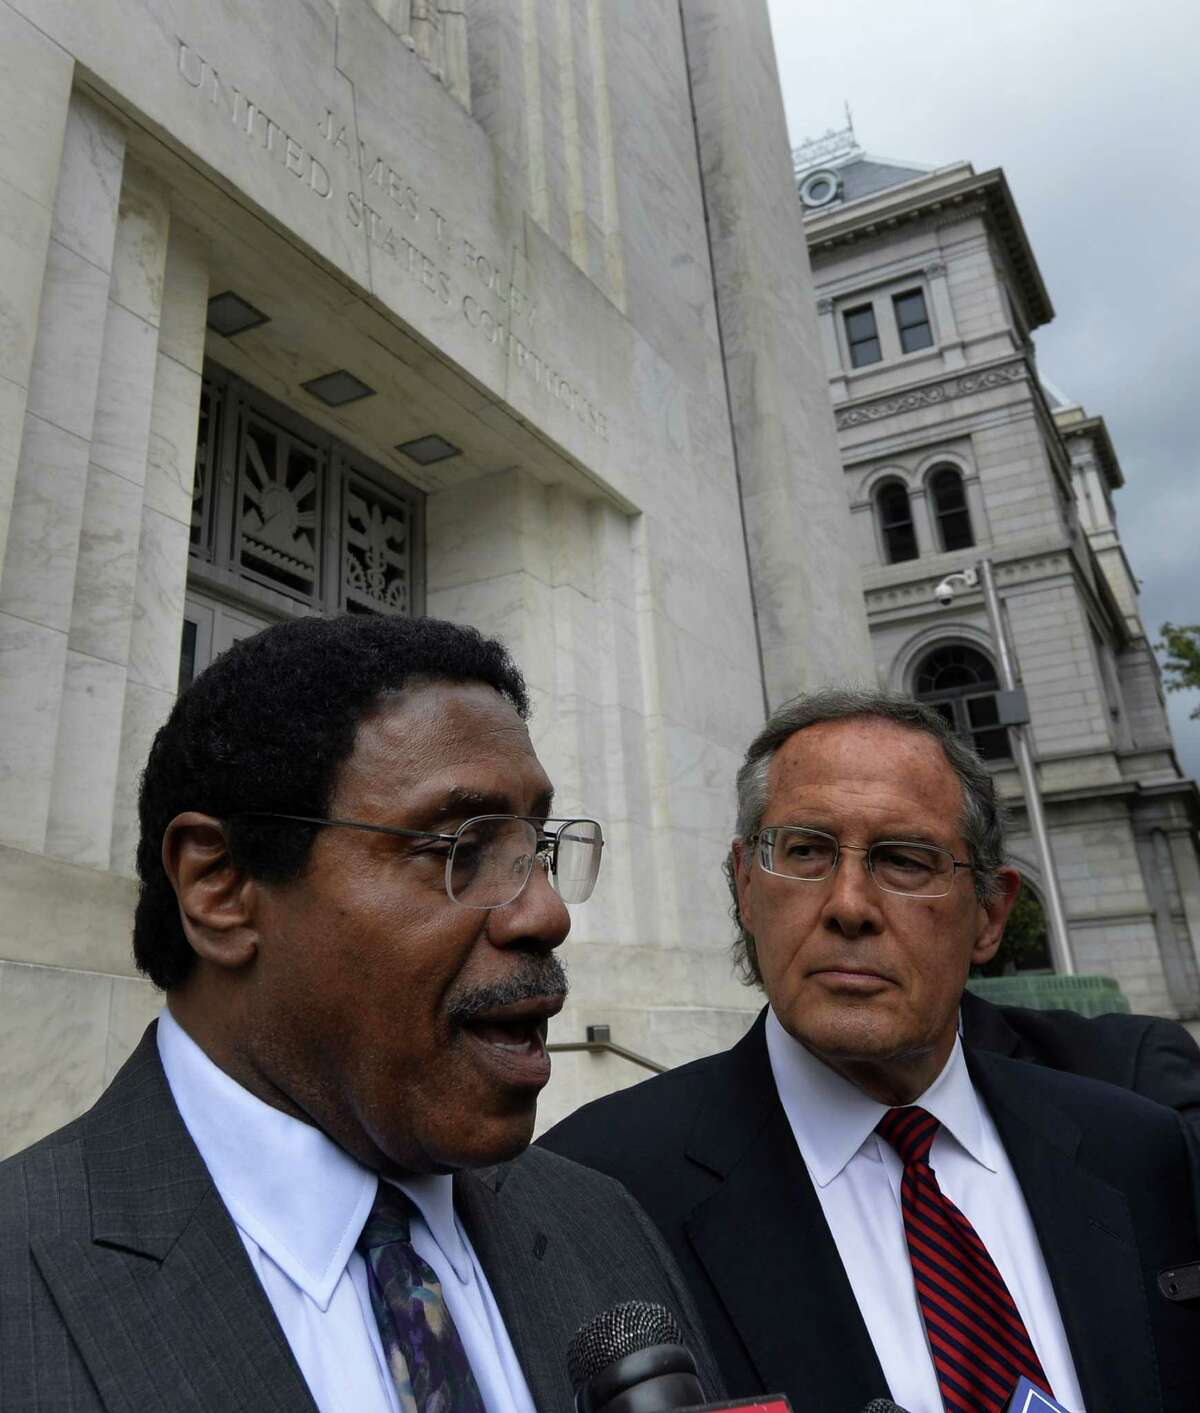 Assemblyman William Scarborough is scheduled to plead guilty to felony charges Thursday in state and federal courtrooms. He faces at least a year in prison for allegedly defrauding the state travel-voucher system, and stealing campaign funds for personal use. (Skip Dickstein/Times Union)